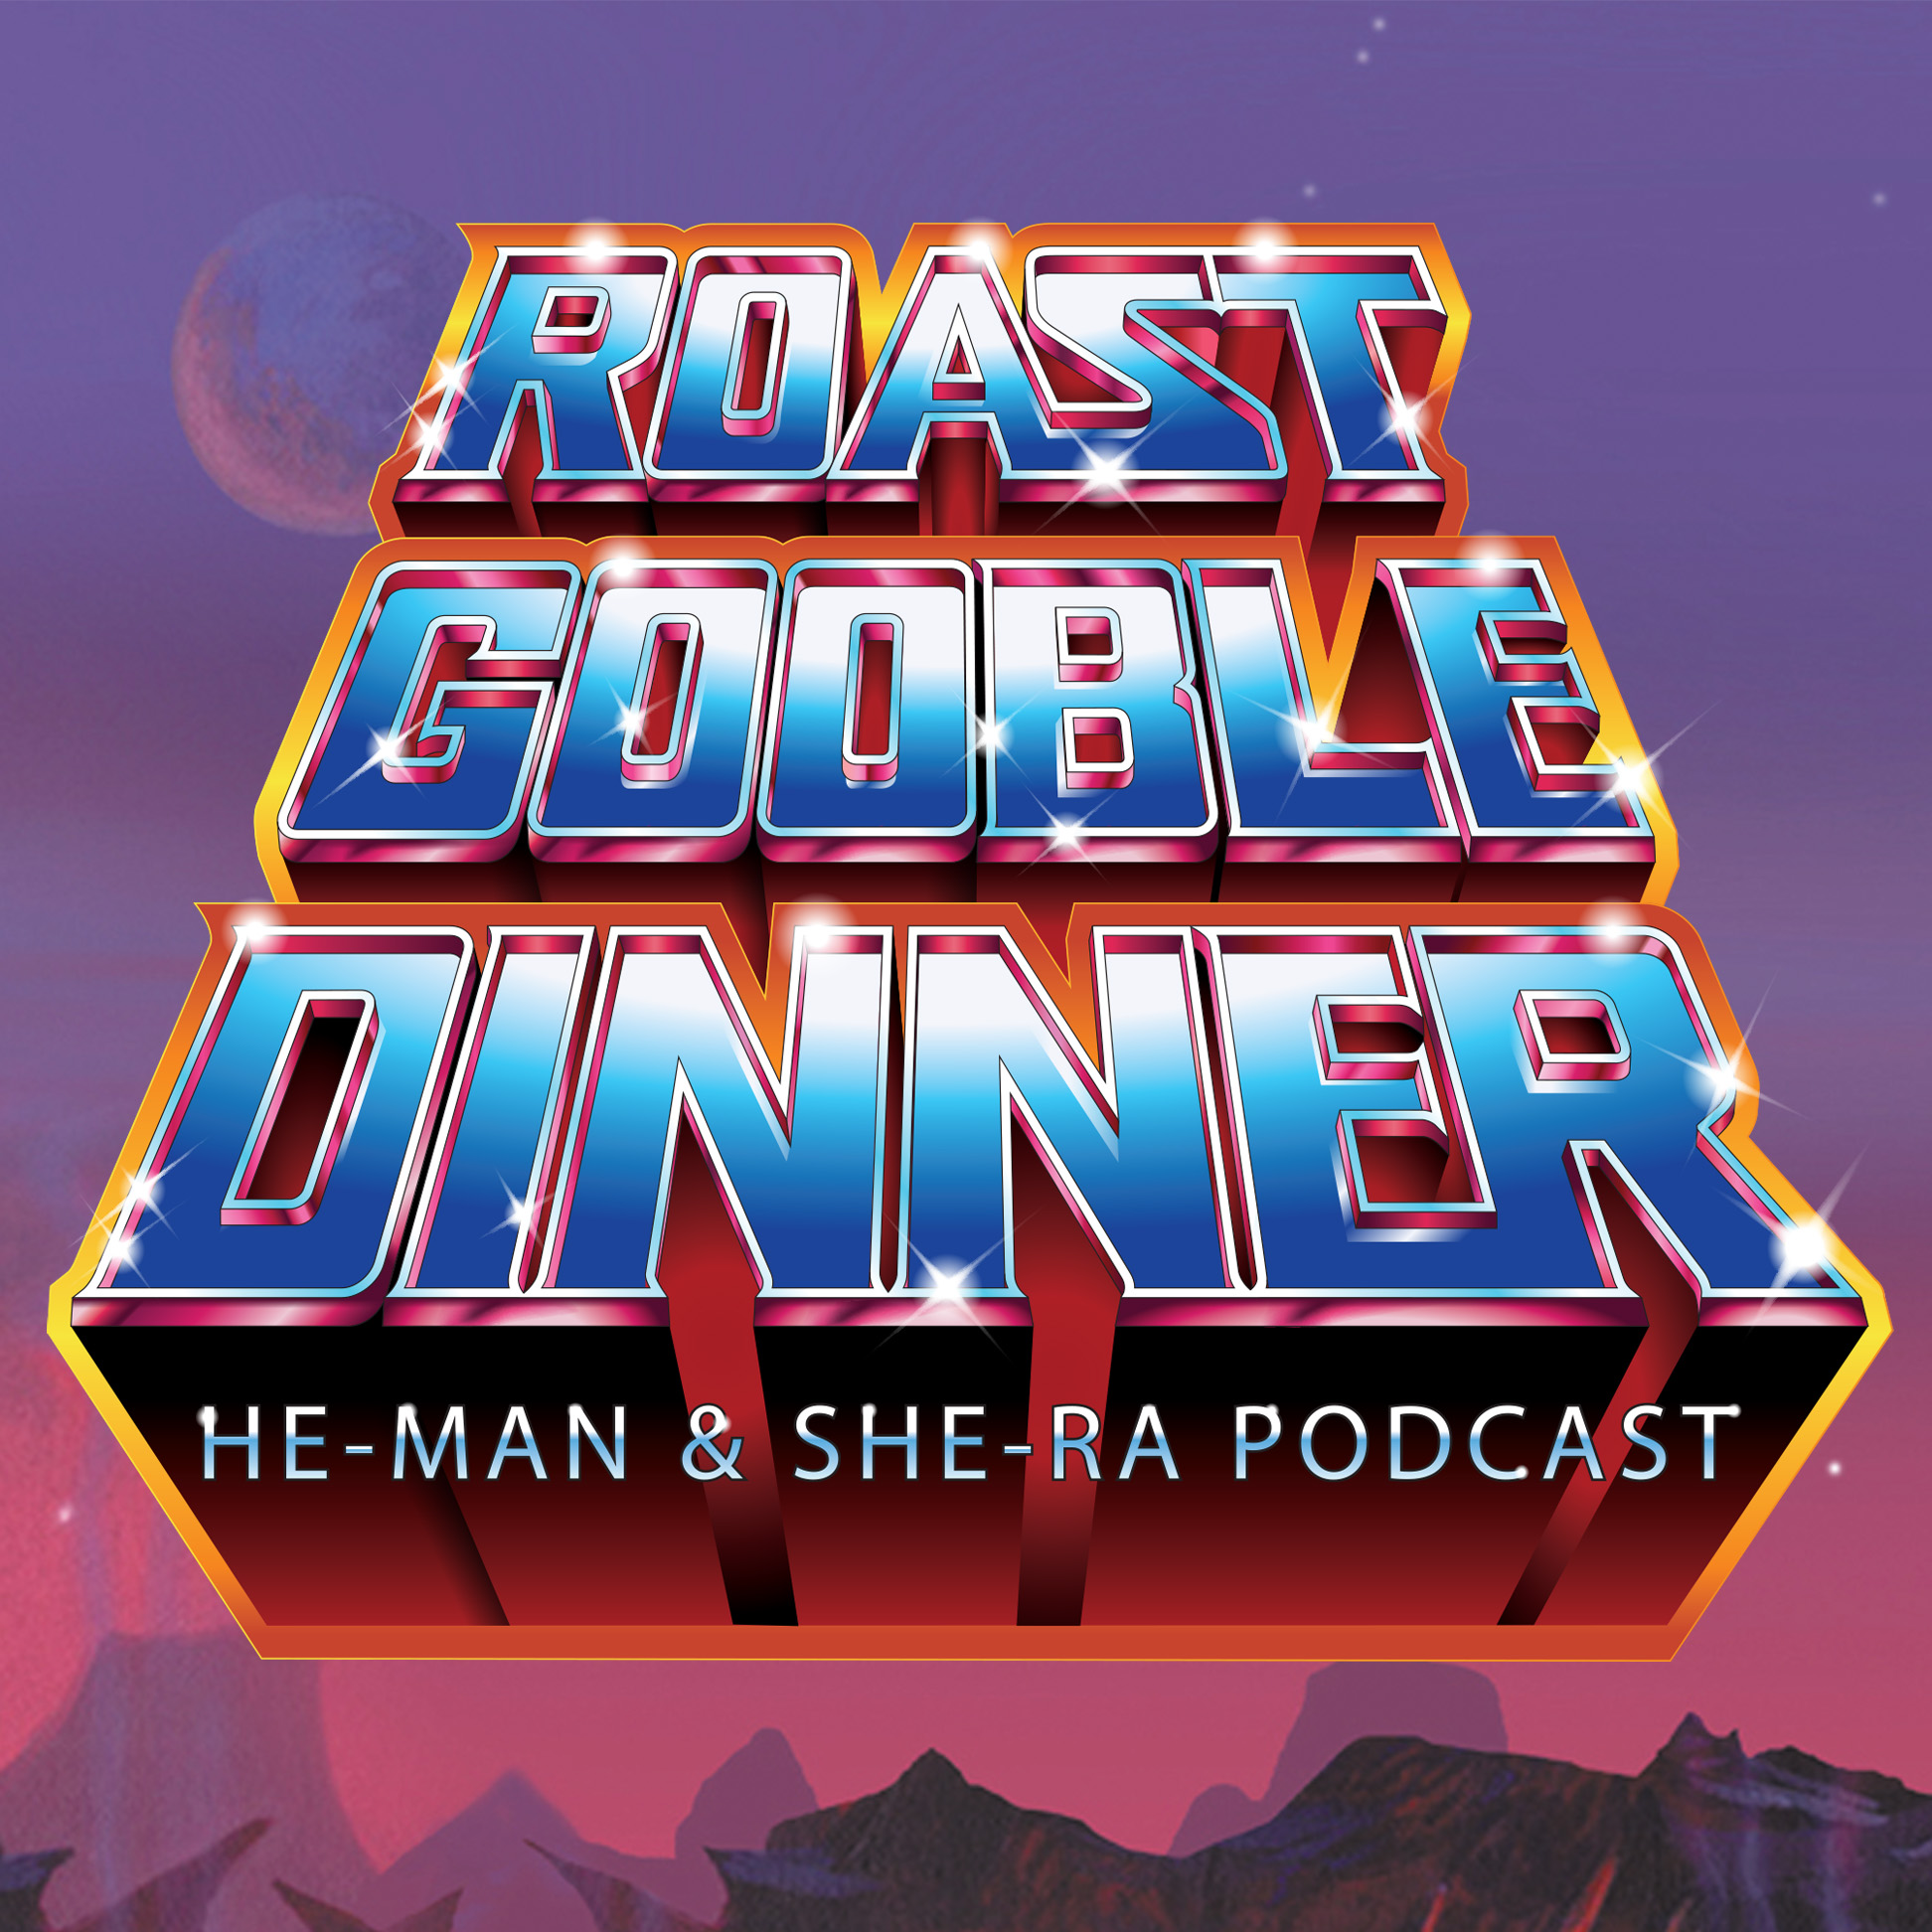 Episode 142 - He-Man.org's Roast Gooble Dinner